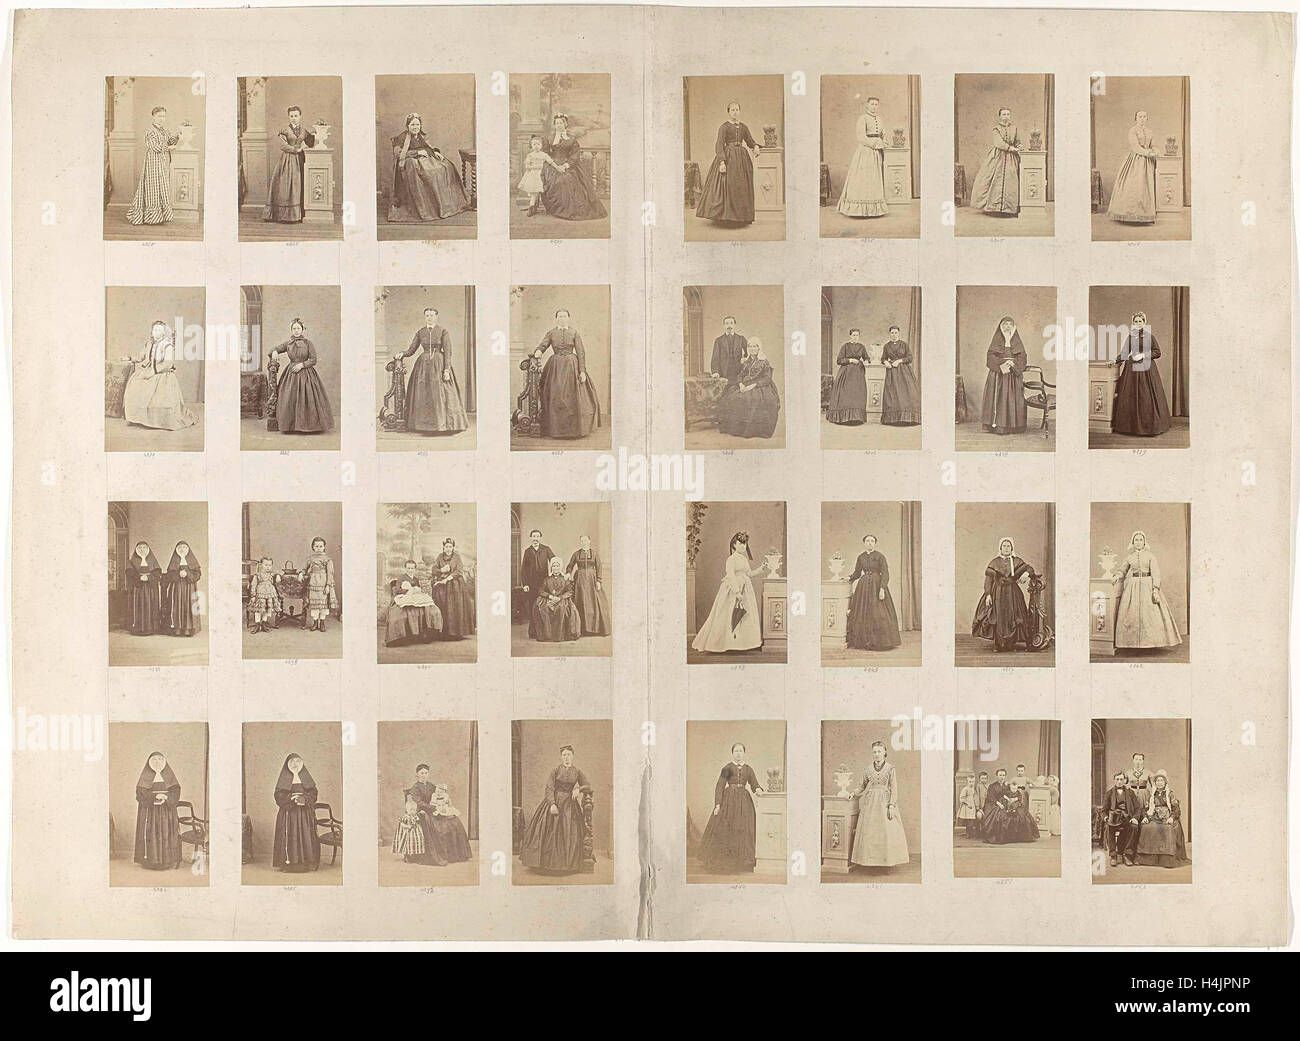 Journal 32 Cartes De Visite Of Inventory From An Unknown Portrait Photographer Anonymous C 1860